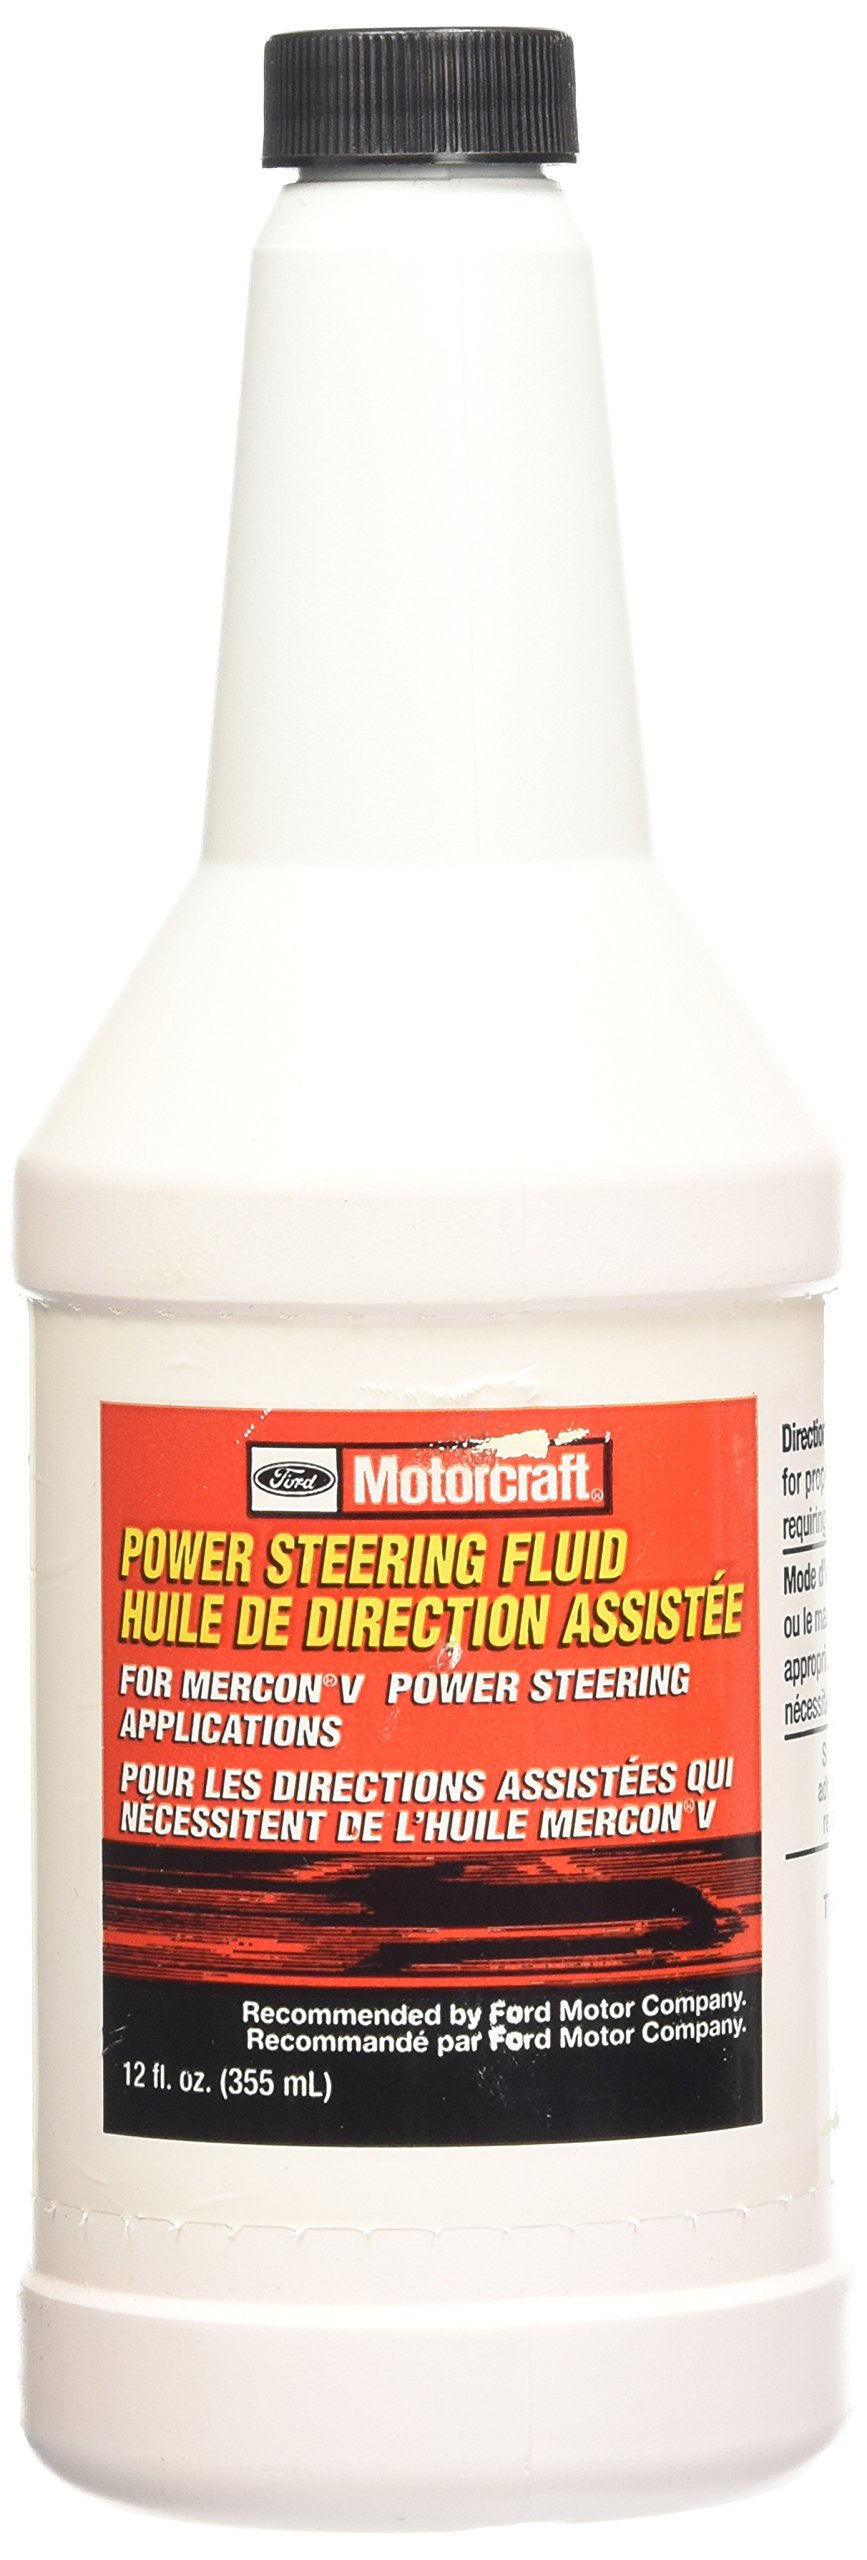 Ford Genuine Fluid XL-14 Power Steering Fluid - 12 oz. by Ford